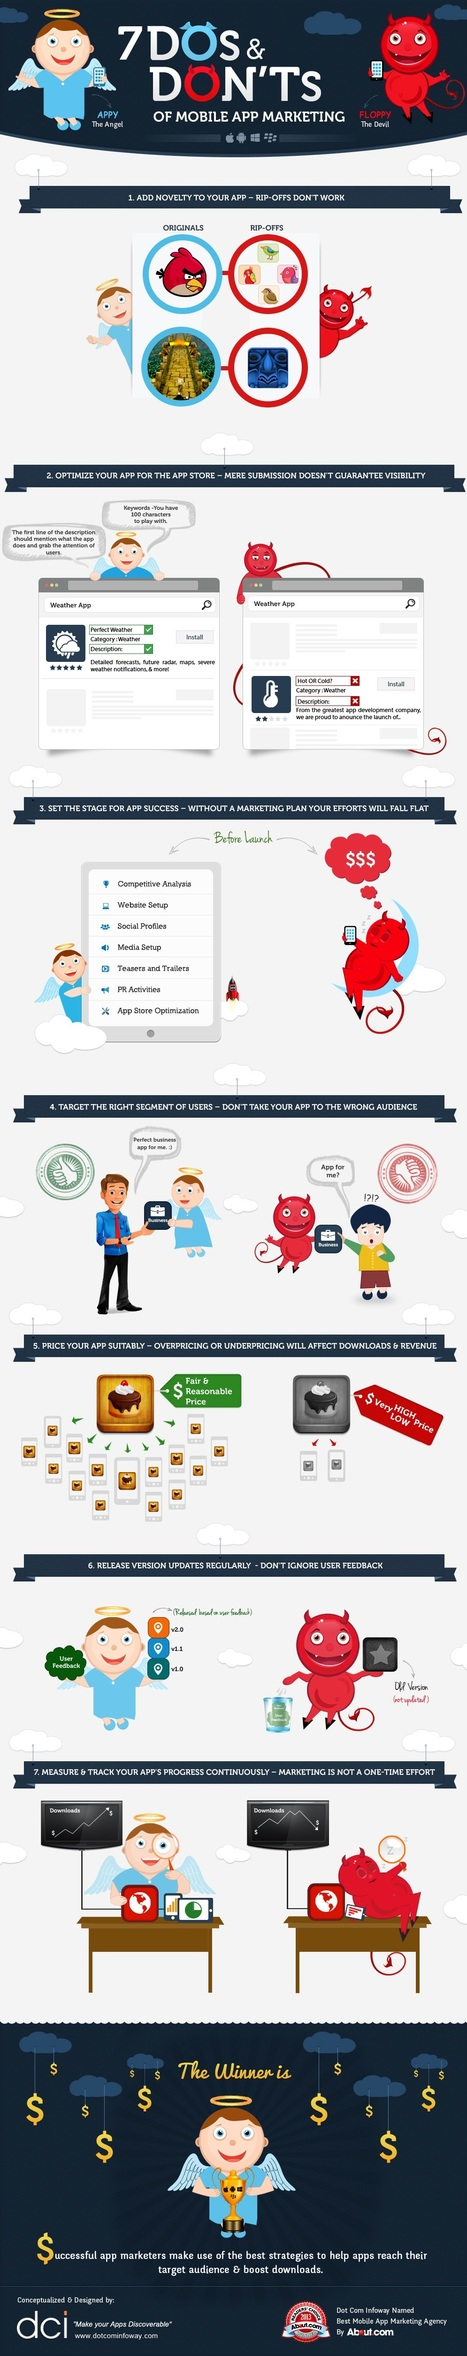 Infographic: The 7 Dos and Don'ts of Mobile App Marketing | Startupper | Scoop.it